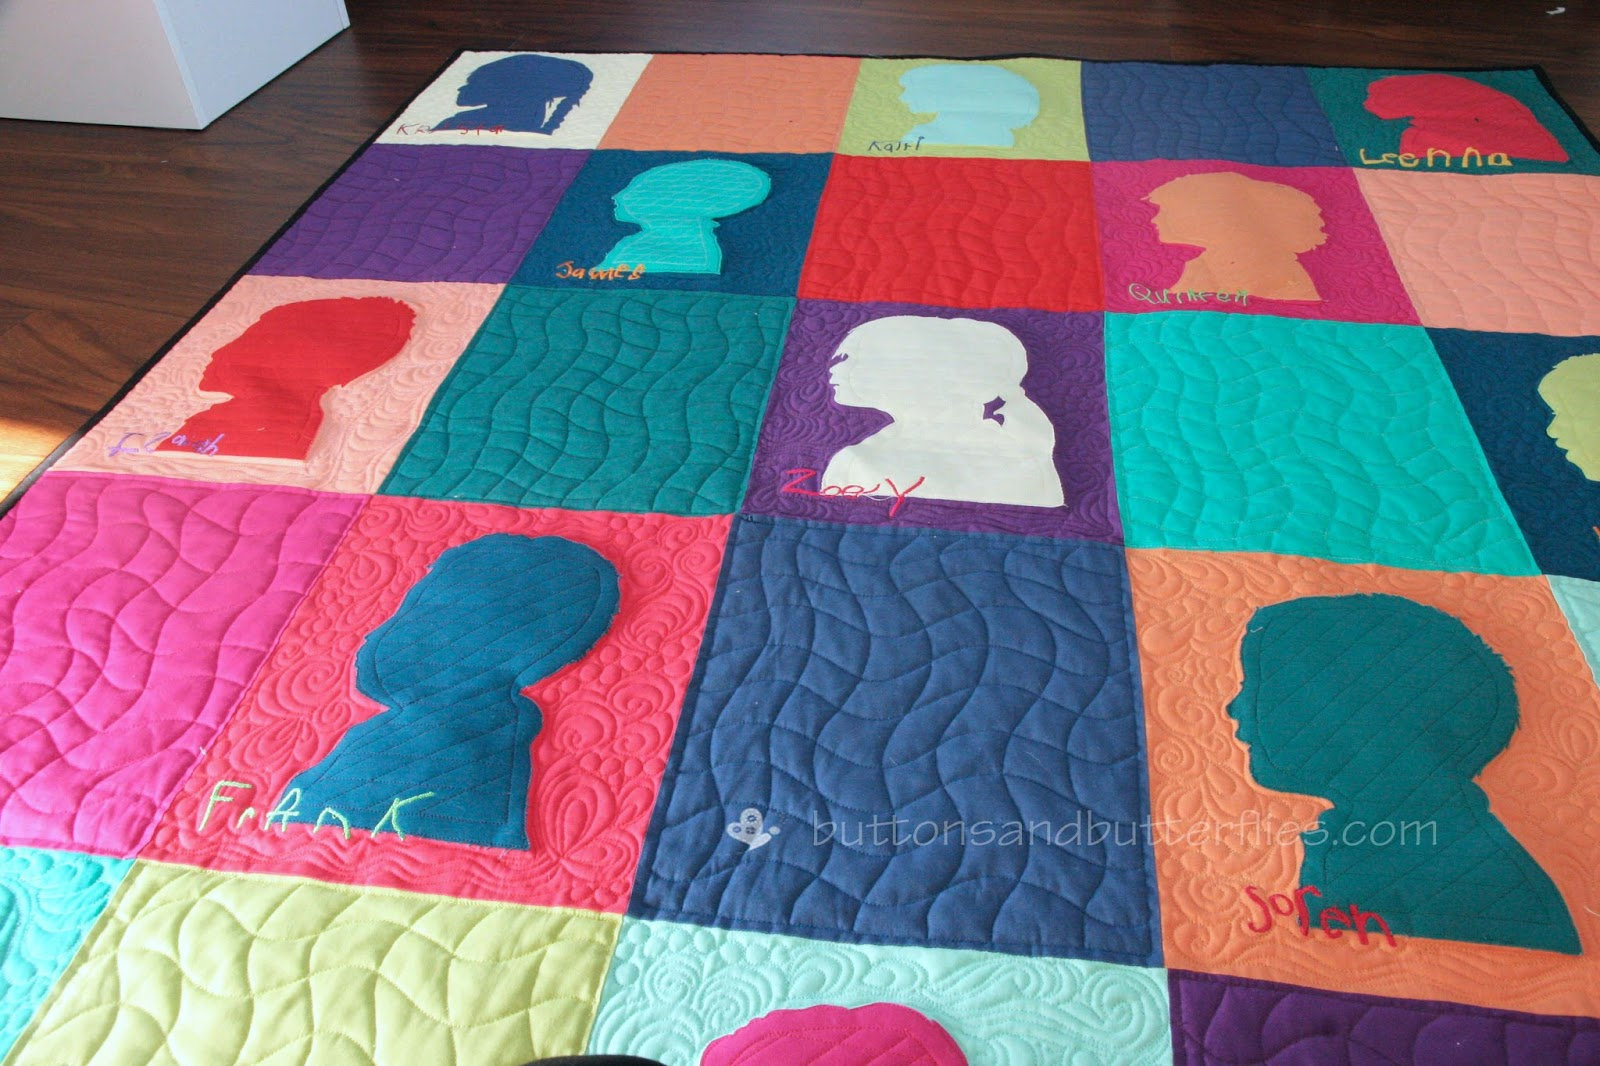 Buttons And Butterflies Sweet Silhouette Quilt